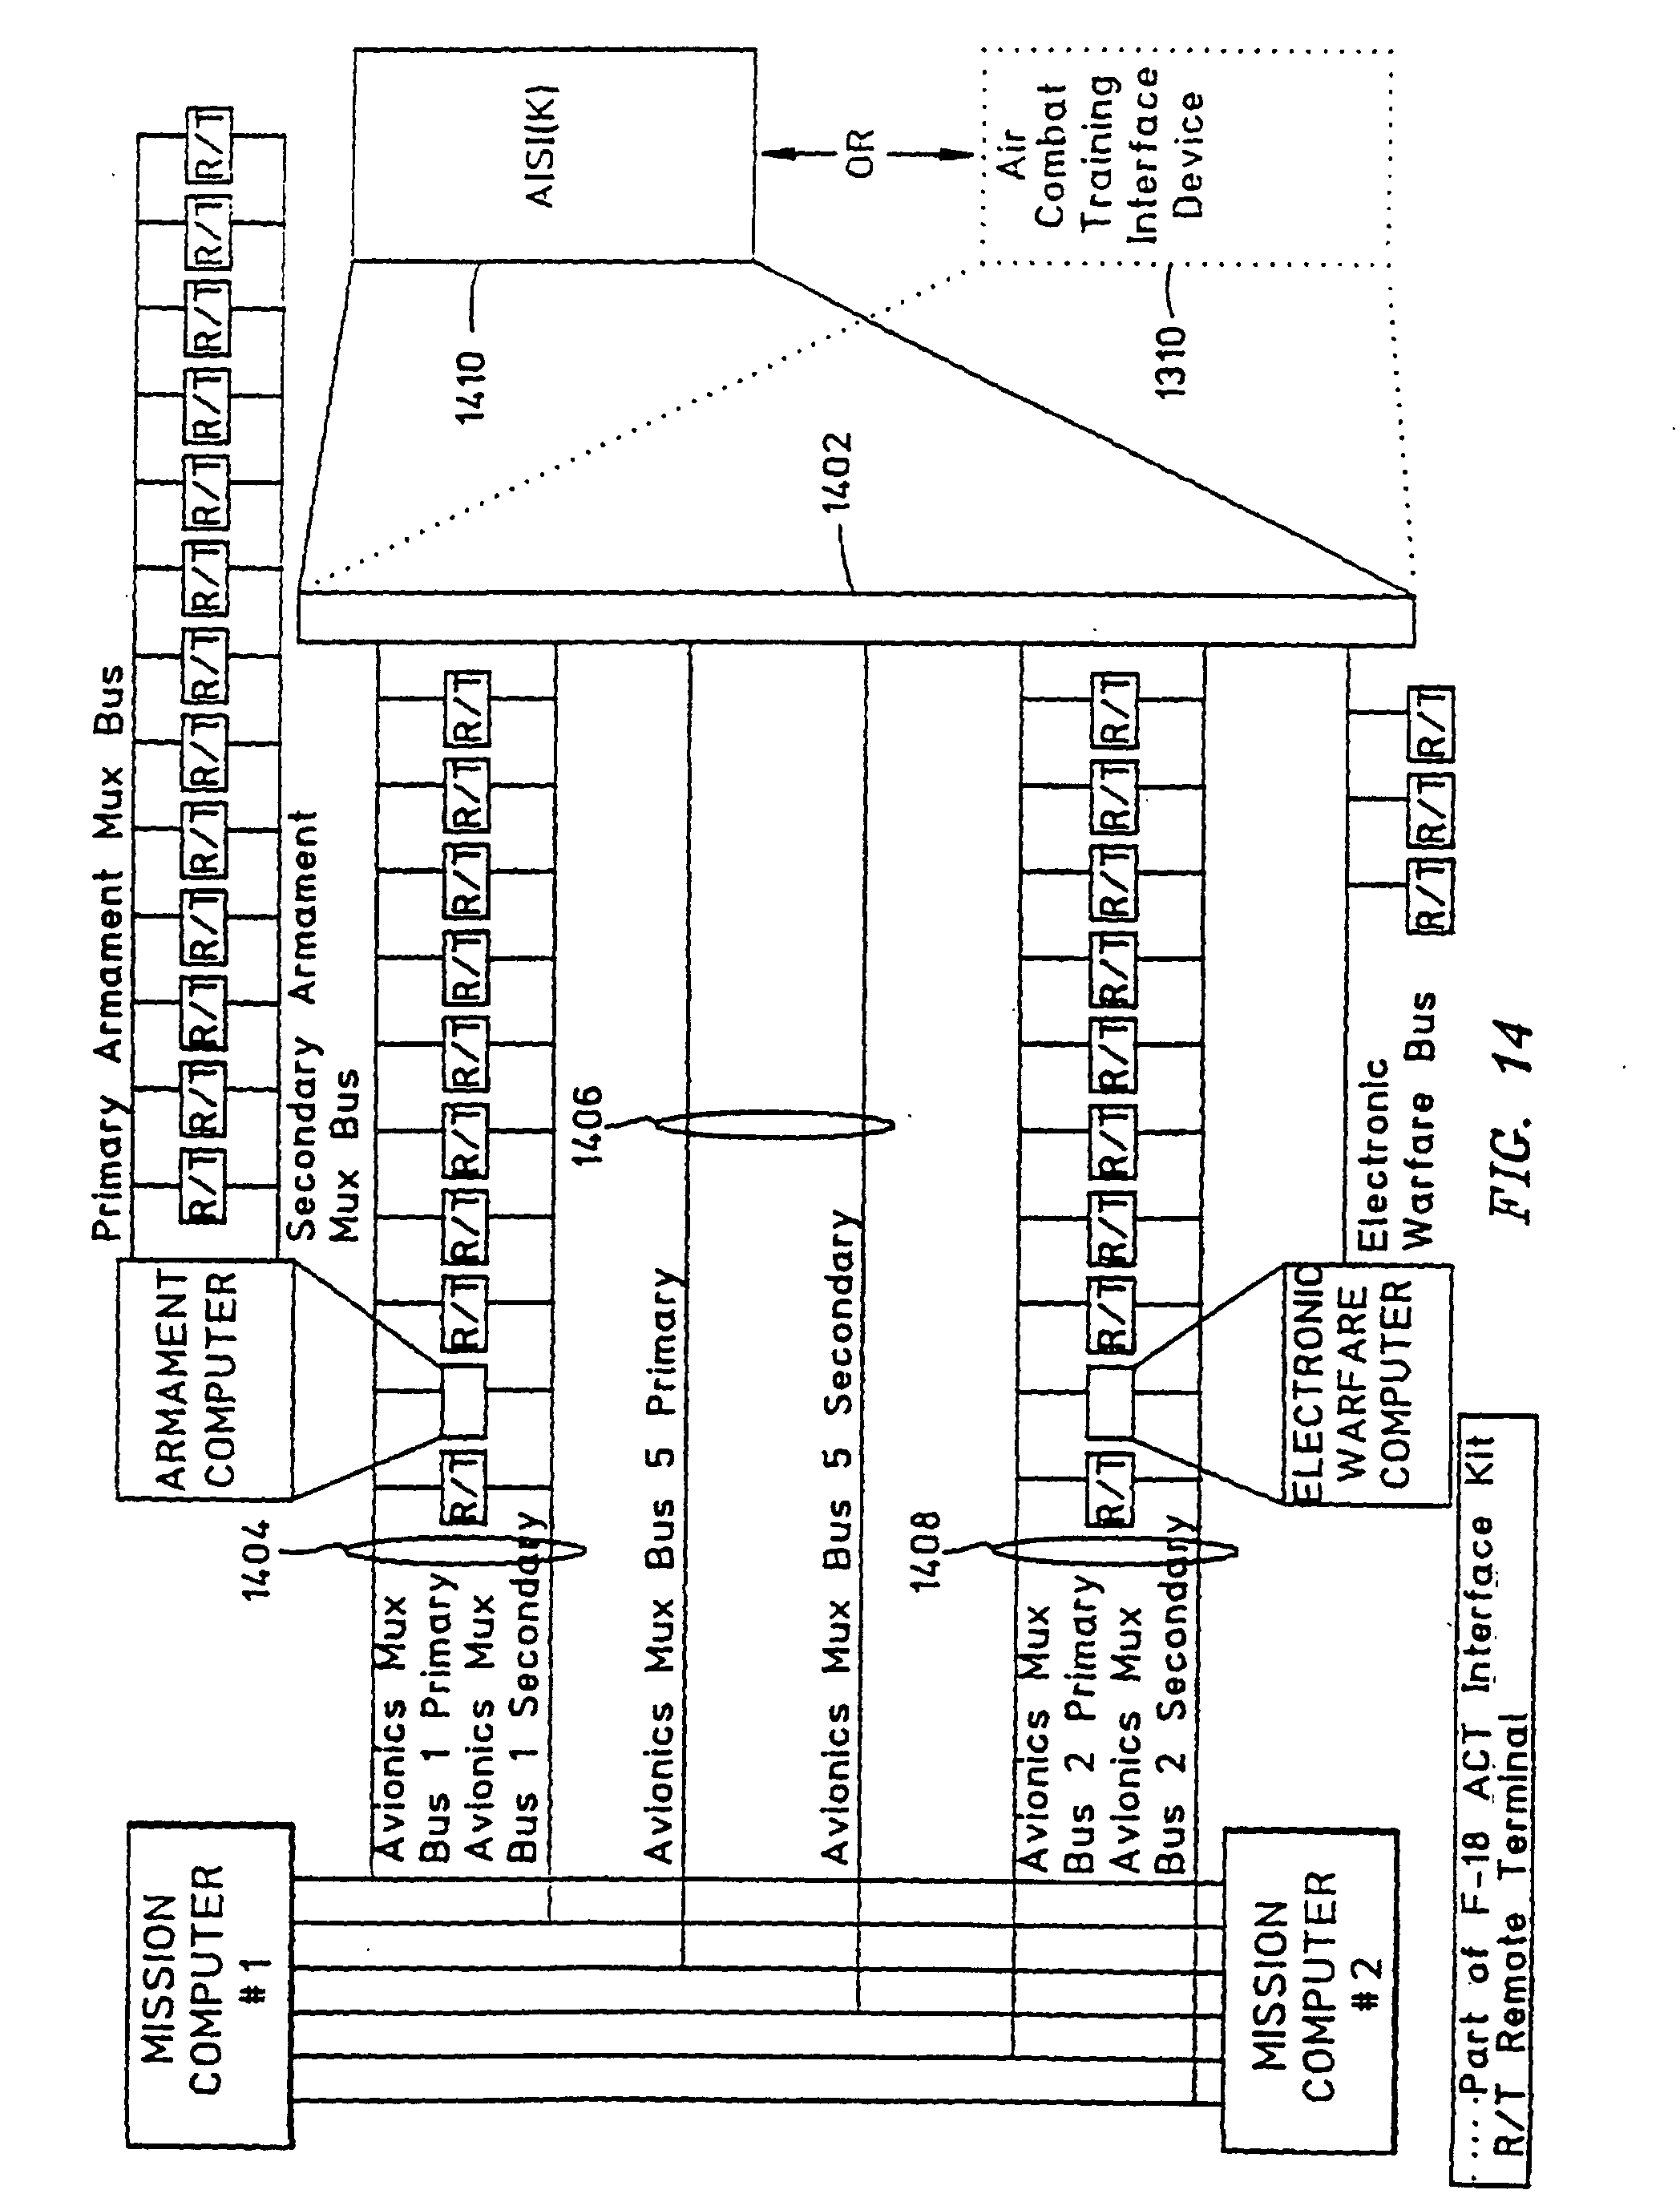 00720001 patent ep0972168b1 aircraft interface device and crossover cable medallion mdc 1600 wiring diagram at soozxer.org